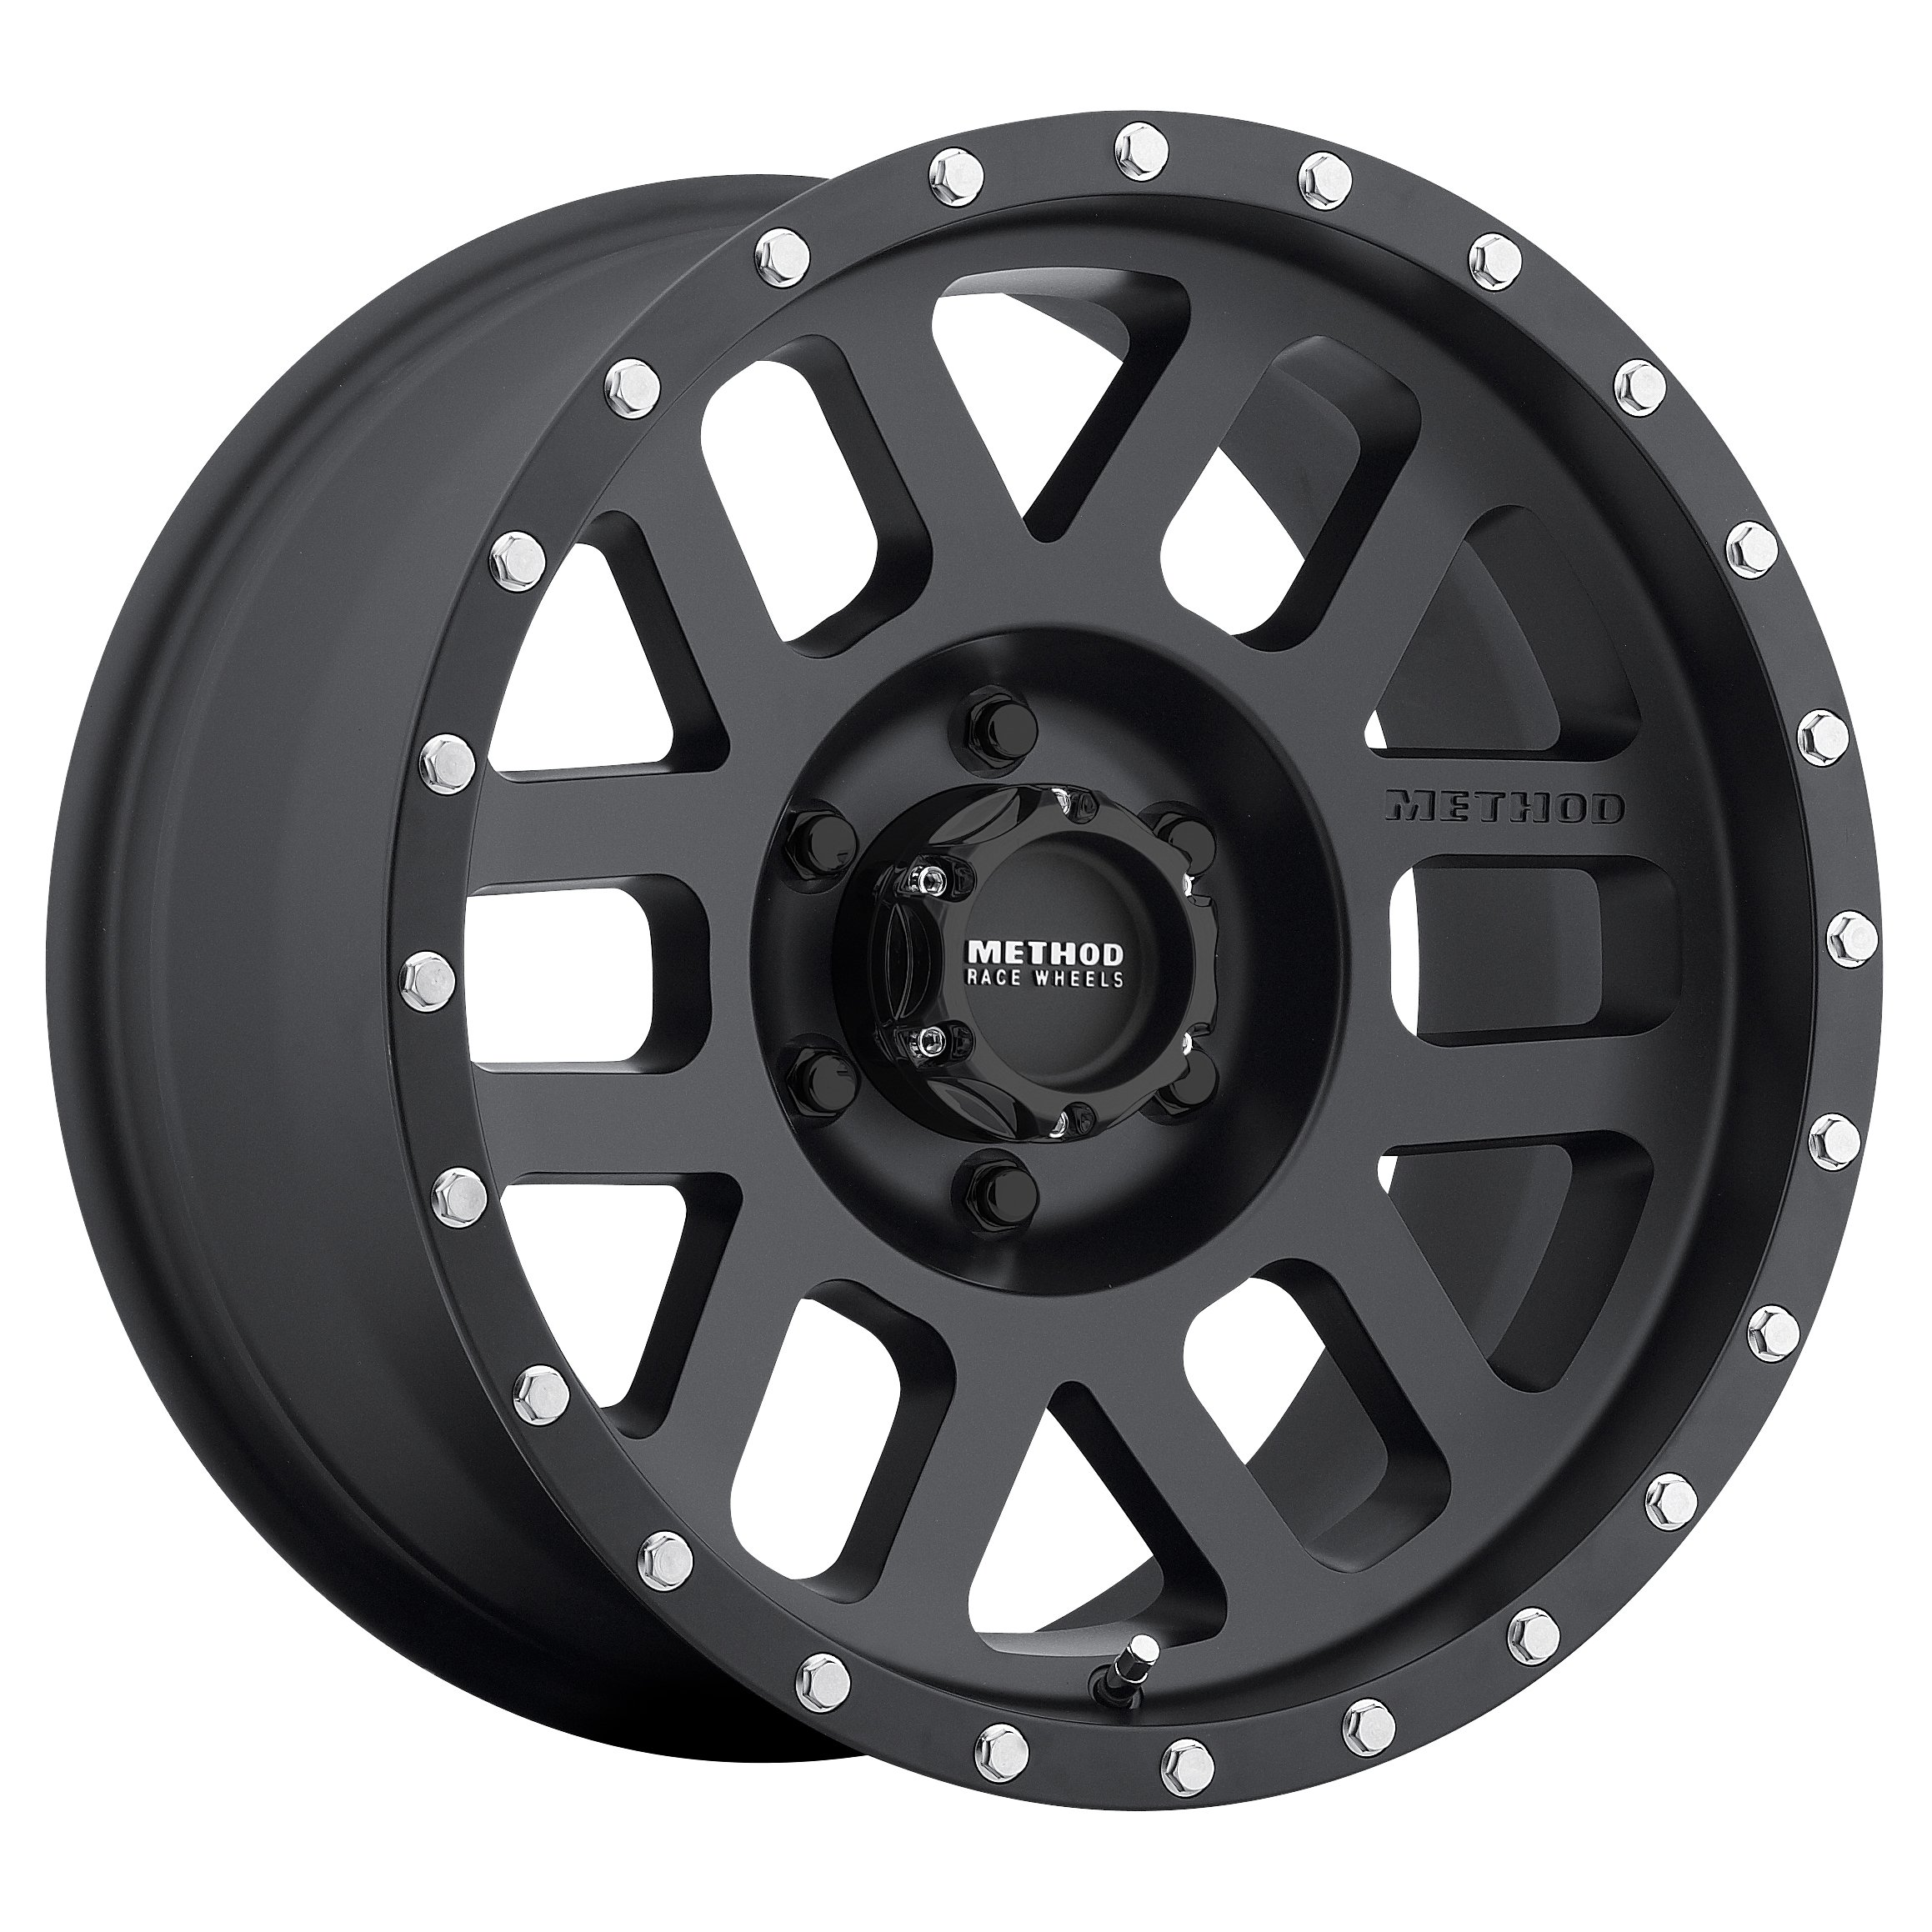 """Method Race Wheels Mesh Matte Black Wheel with Stainless Steel Accent Bolts (18x9""""/8x6.5"""") -12 mm offset"""